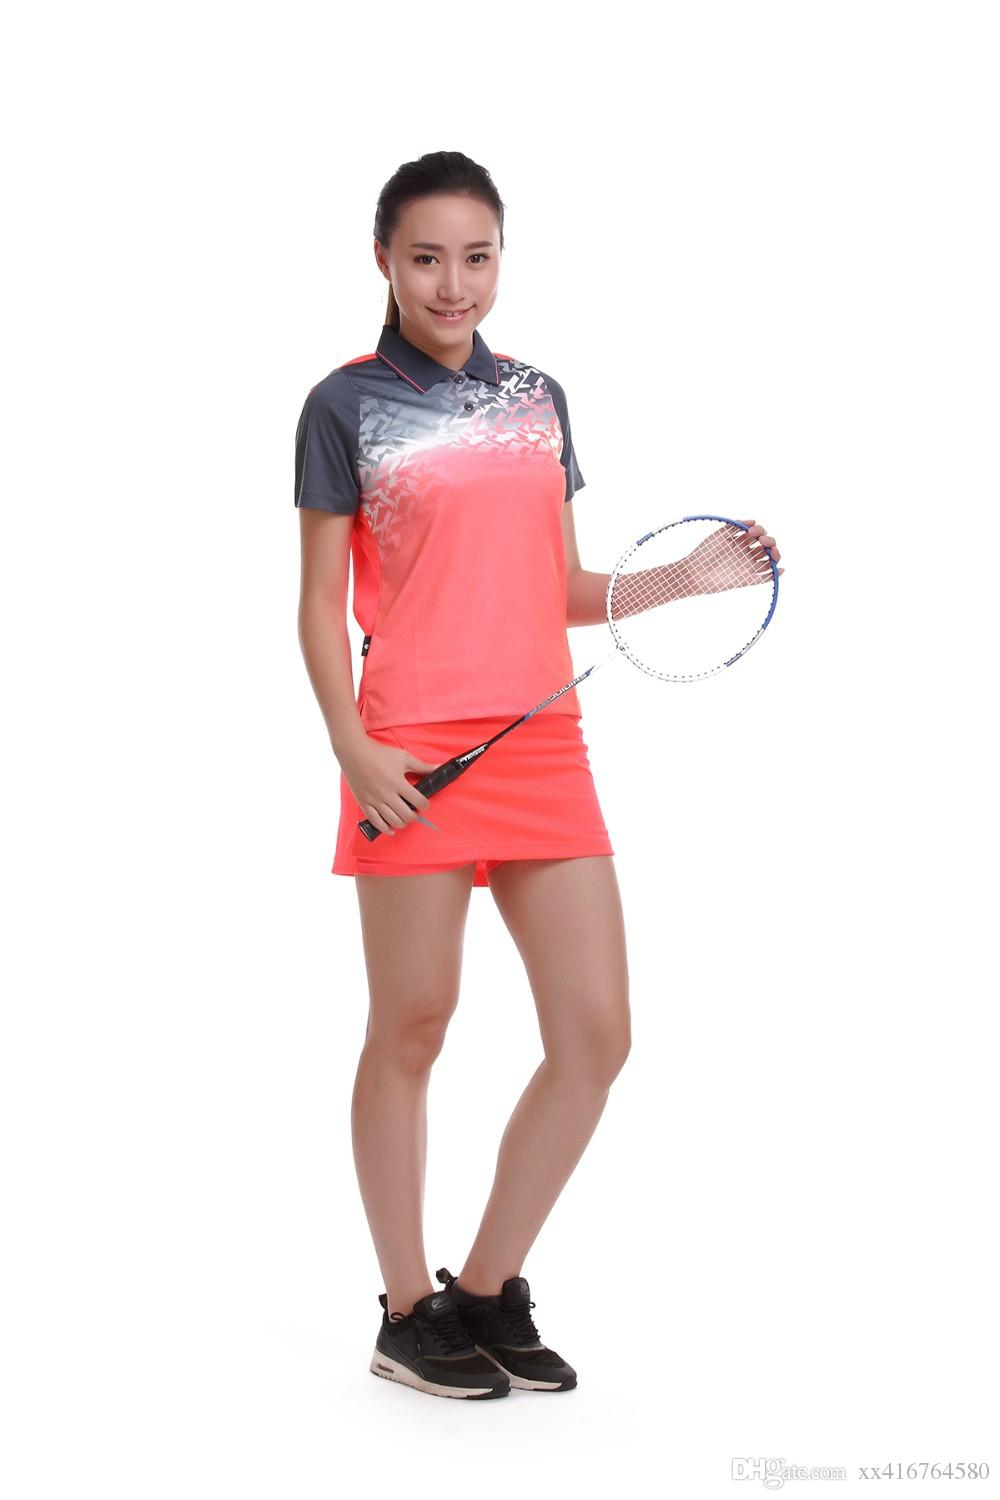 Sportswear sweat Quick Dry breathable badminton shirt , Women/Men table tennis clothes running training Exercise POLO T Shirts